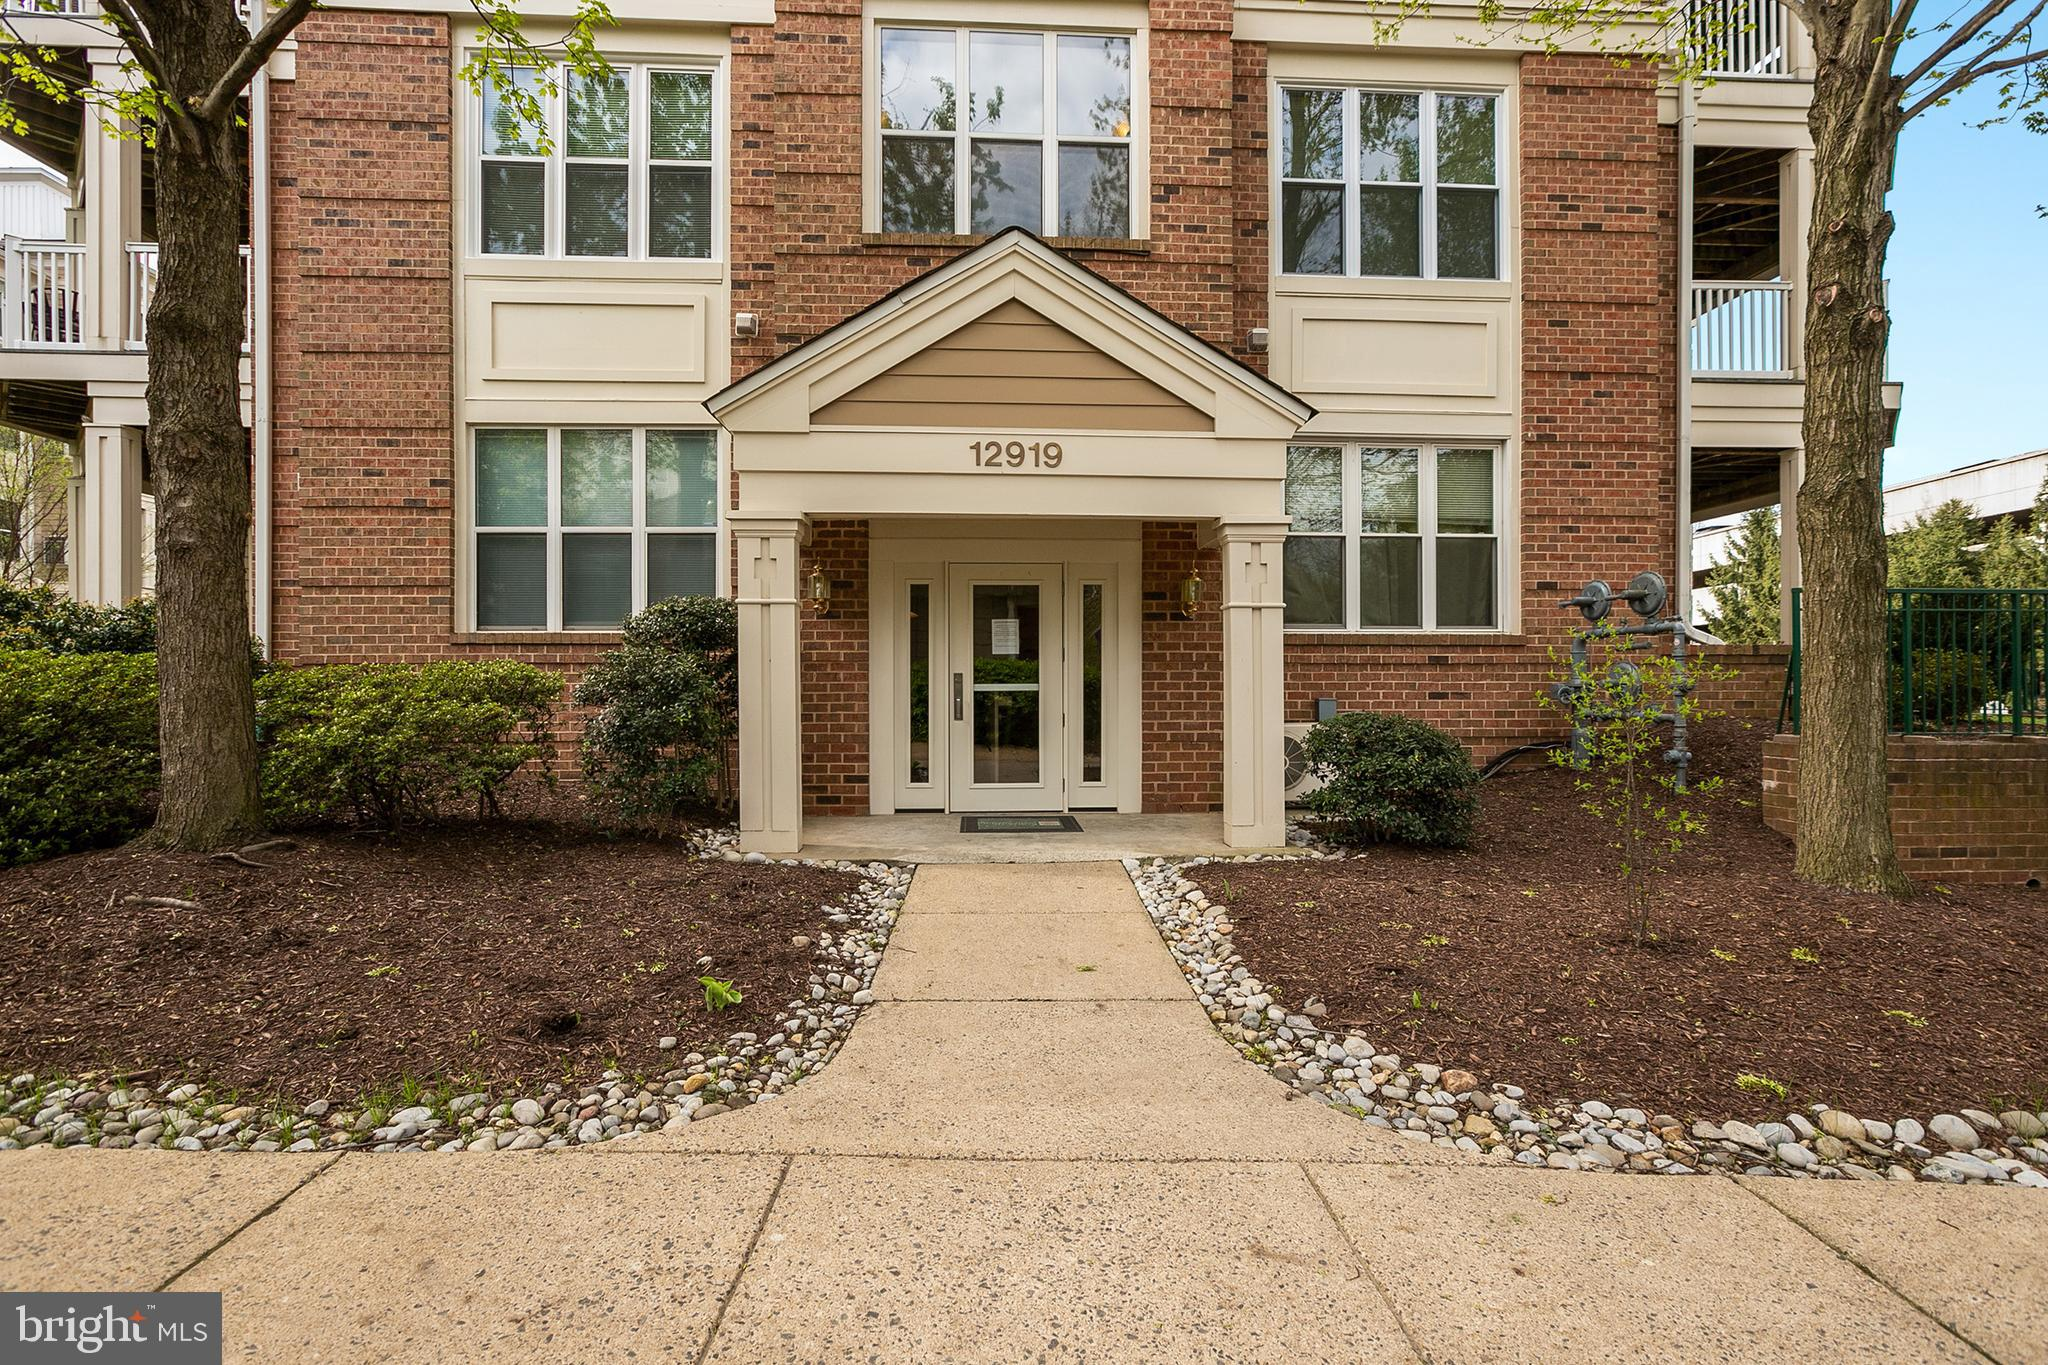 Location, Location!  Close to future Herndon metro station shops and commuting access.  This Worldgate condo is move-in ready with brand new paint, carpet and water heater.  Living and dining areas are warmed by a fireplace. The master bedroom offers a large walk-in closet. All windows and slider door in process of replacement.  The Worldgate community is only 1/4 mile to Worldgate Center with theater, restaurants, Sport & Health Club, and is just minutes to Dulles Airport. The condo association offers two swimming pools, clubhouse, fitness center, underground parking, secure entrance, and elevators.